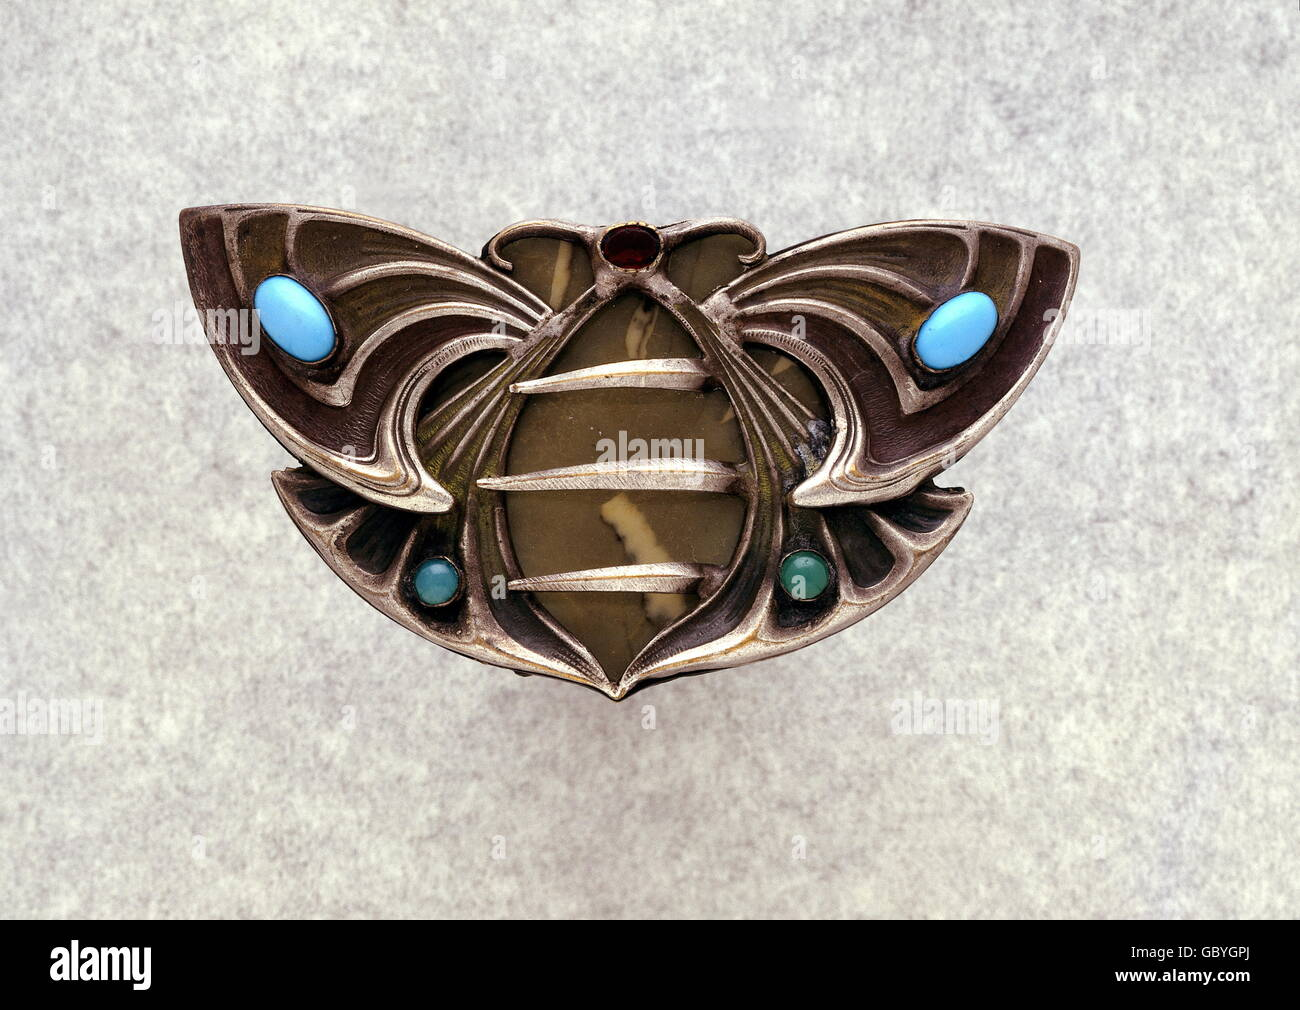 jewellery, belt buckle, belt buckle, white alloy, two glass stones, two-piece, circa 1900, Additional-Rights-Clearences - Stock Image